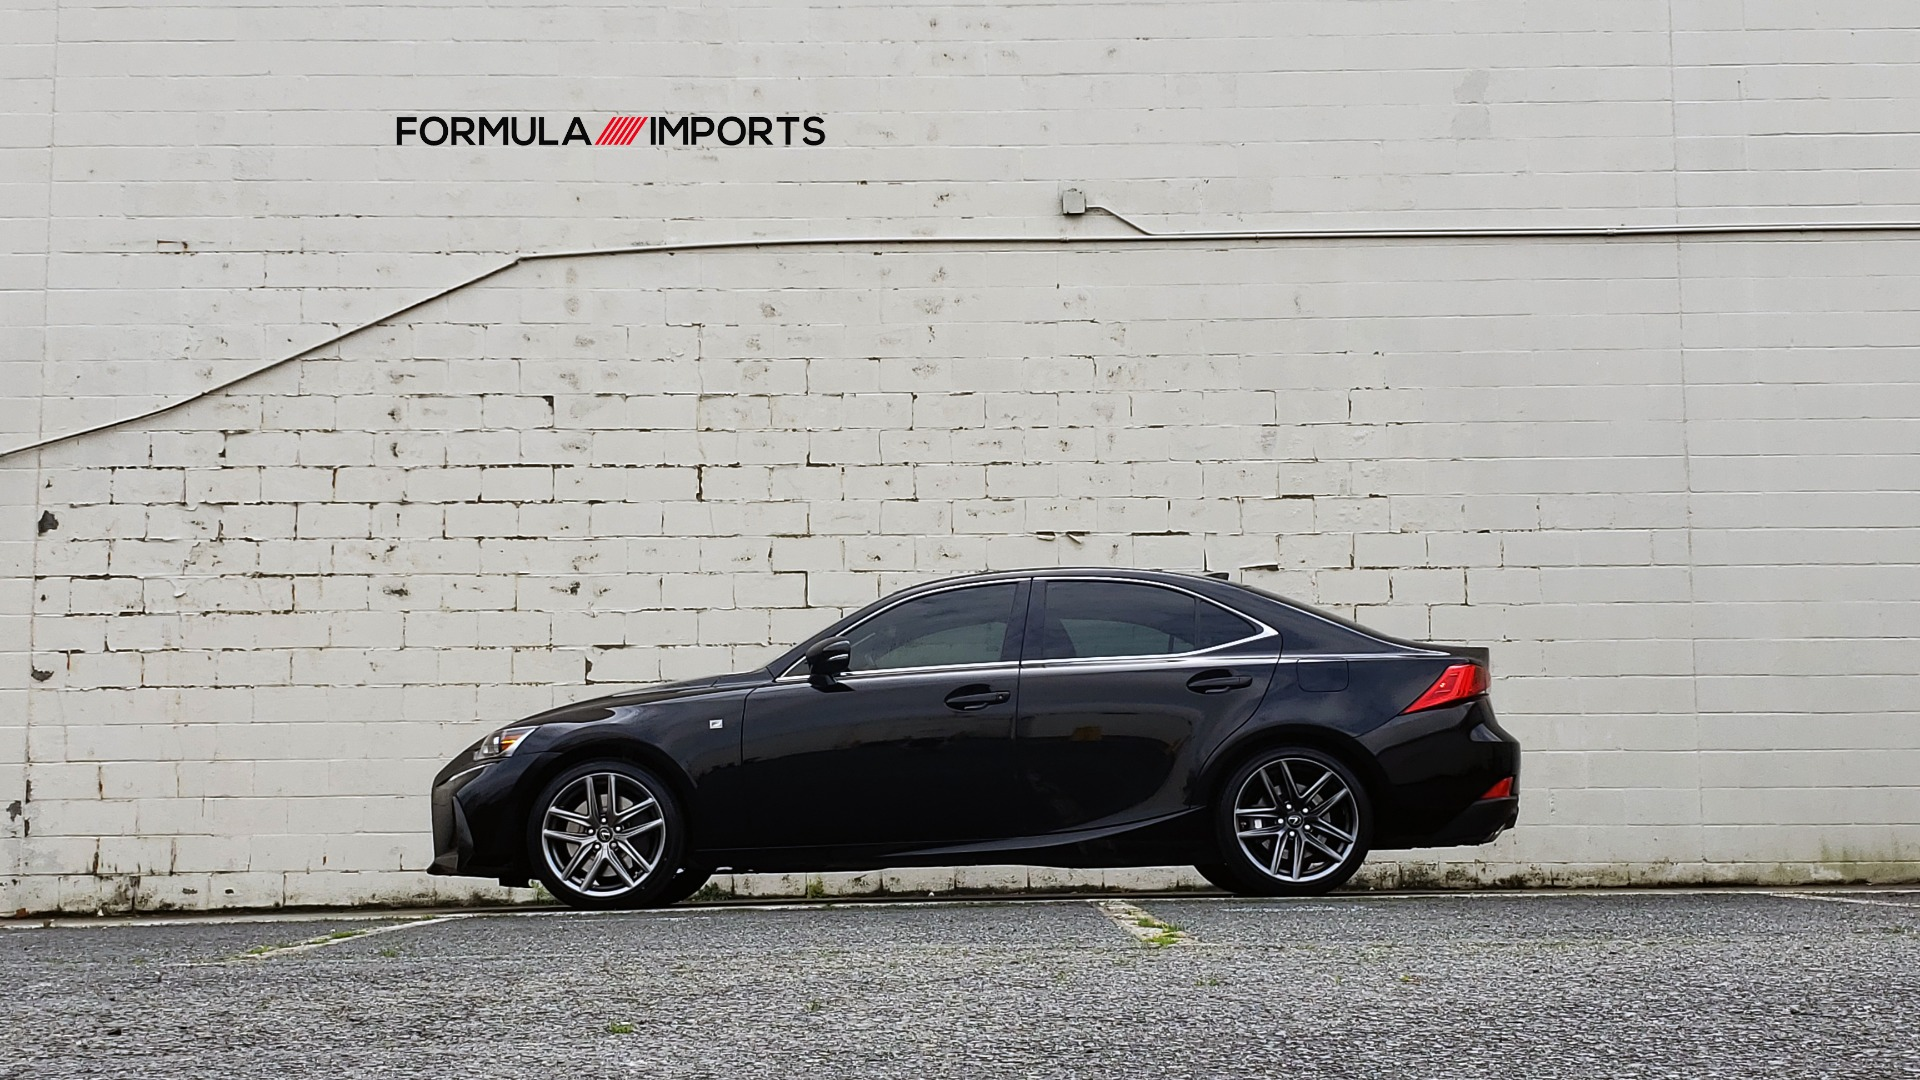 Used 2017 Lexus IS 200T F-SPORT / SUNROOF / REARVIEW / VENT SEATS for sale Sold at Formula Imports in Charlotte NC 28227 89